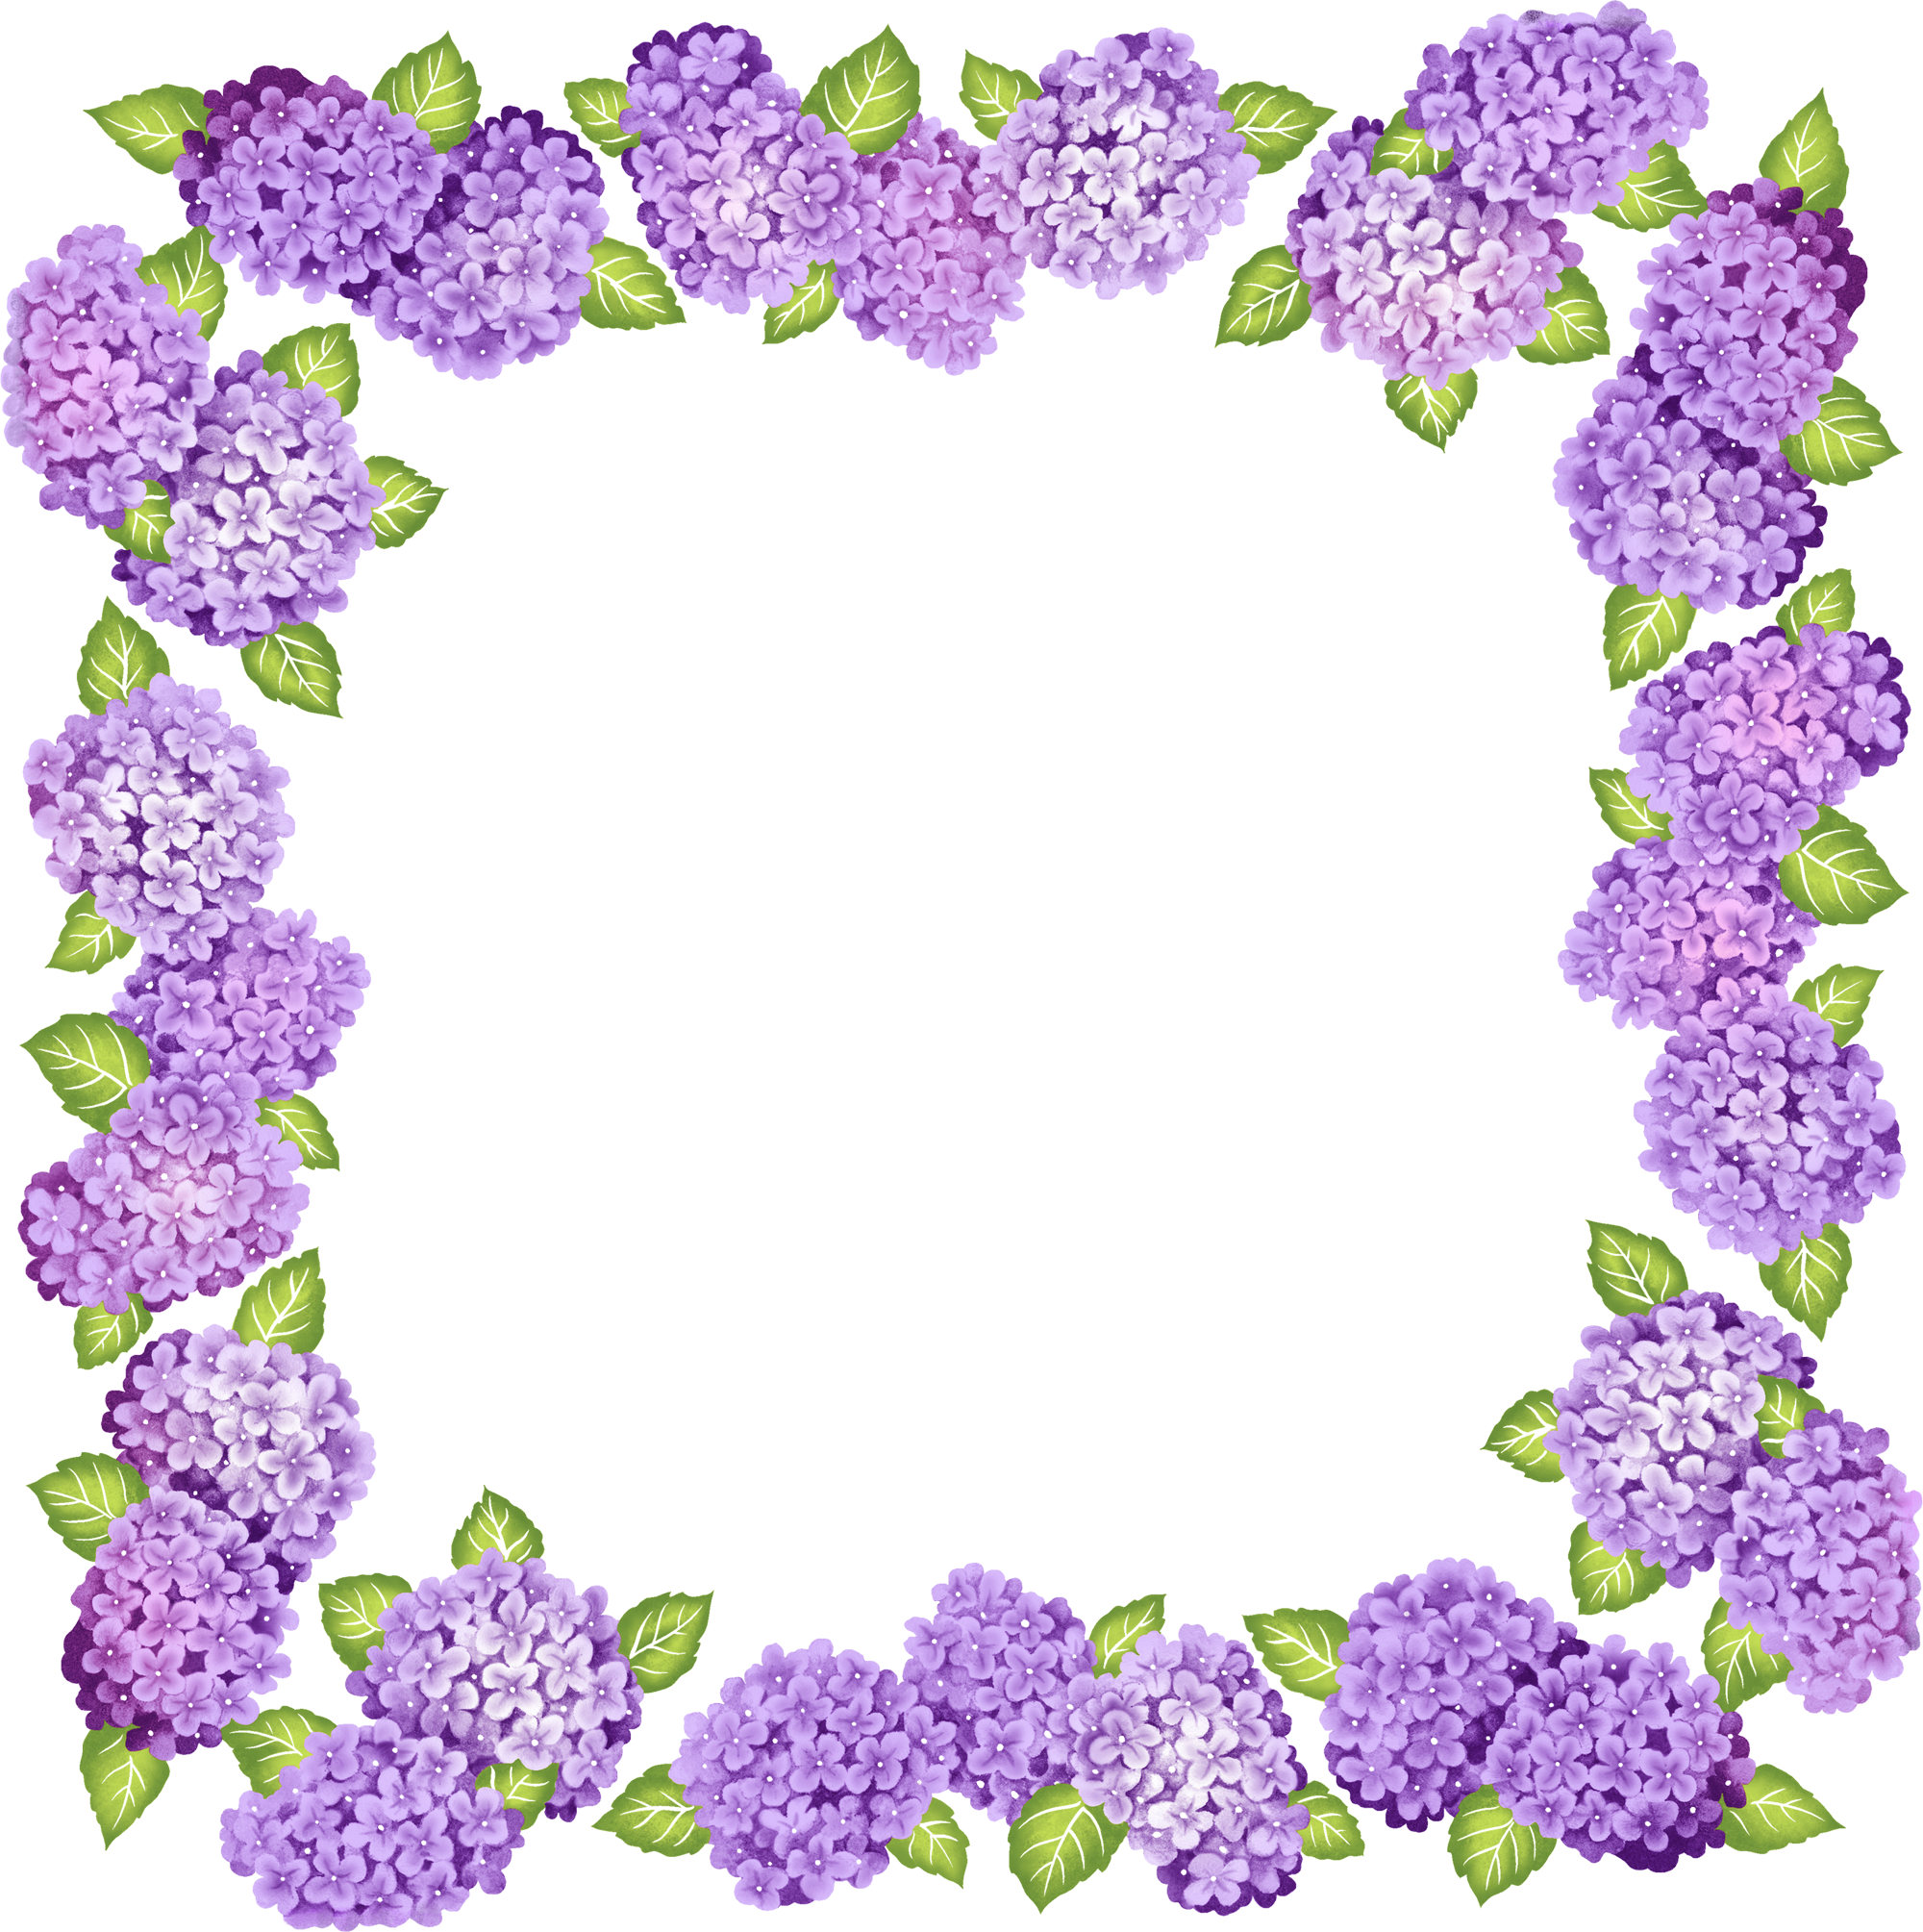 Free flower frame clipart image free library Cute Transparent Purple Flowers Frame | Gallery Yopriceville - High ... image free library